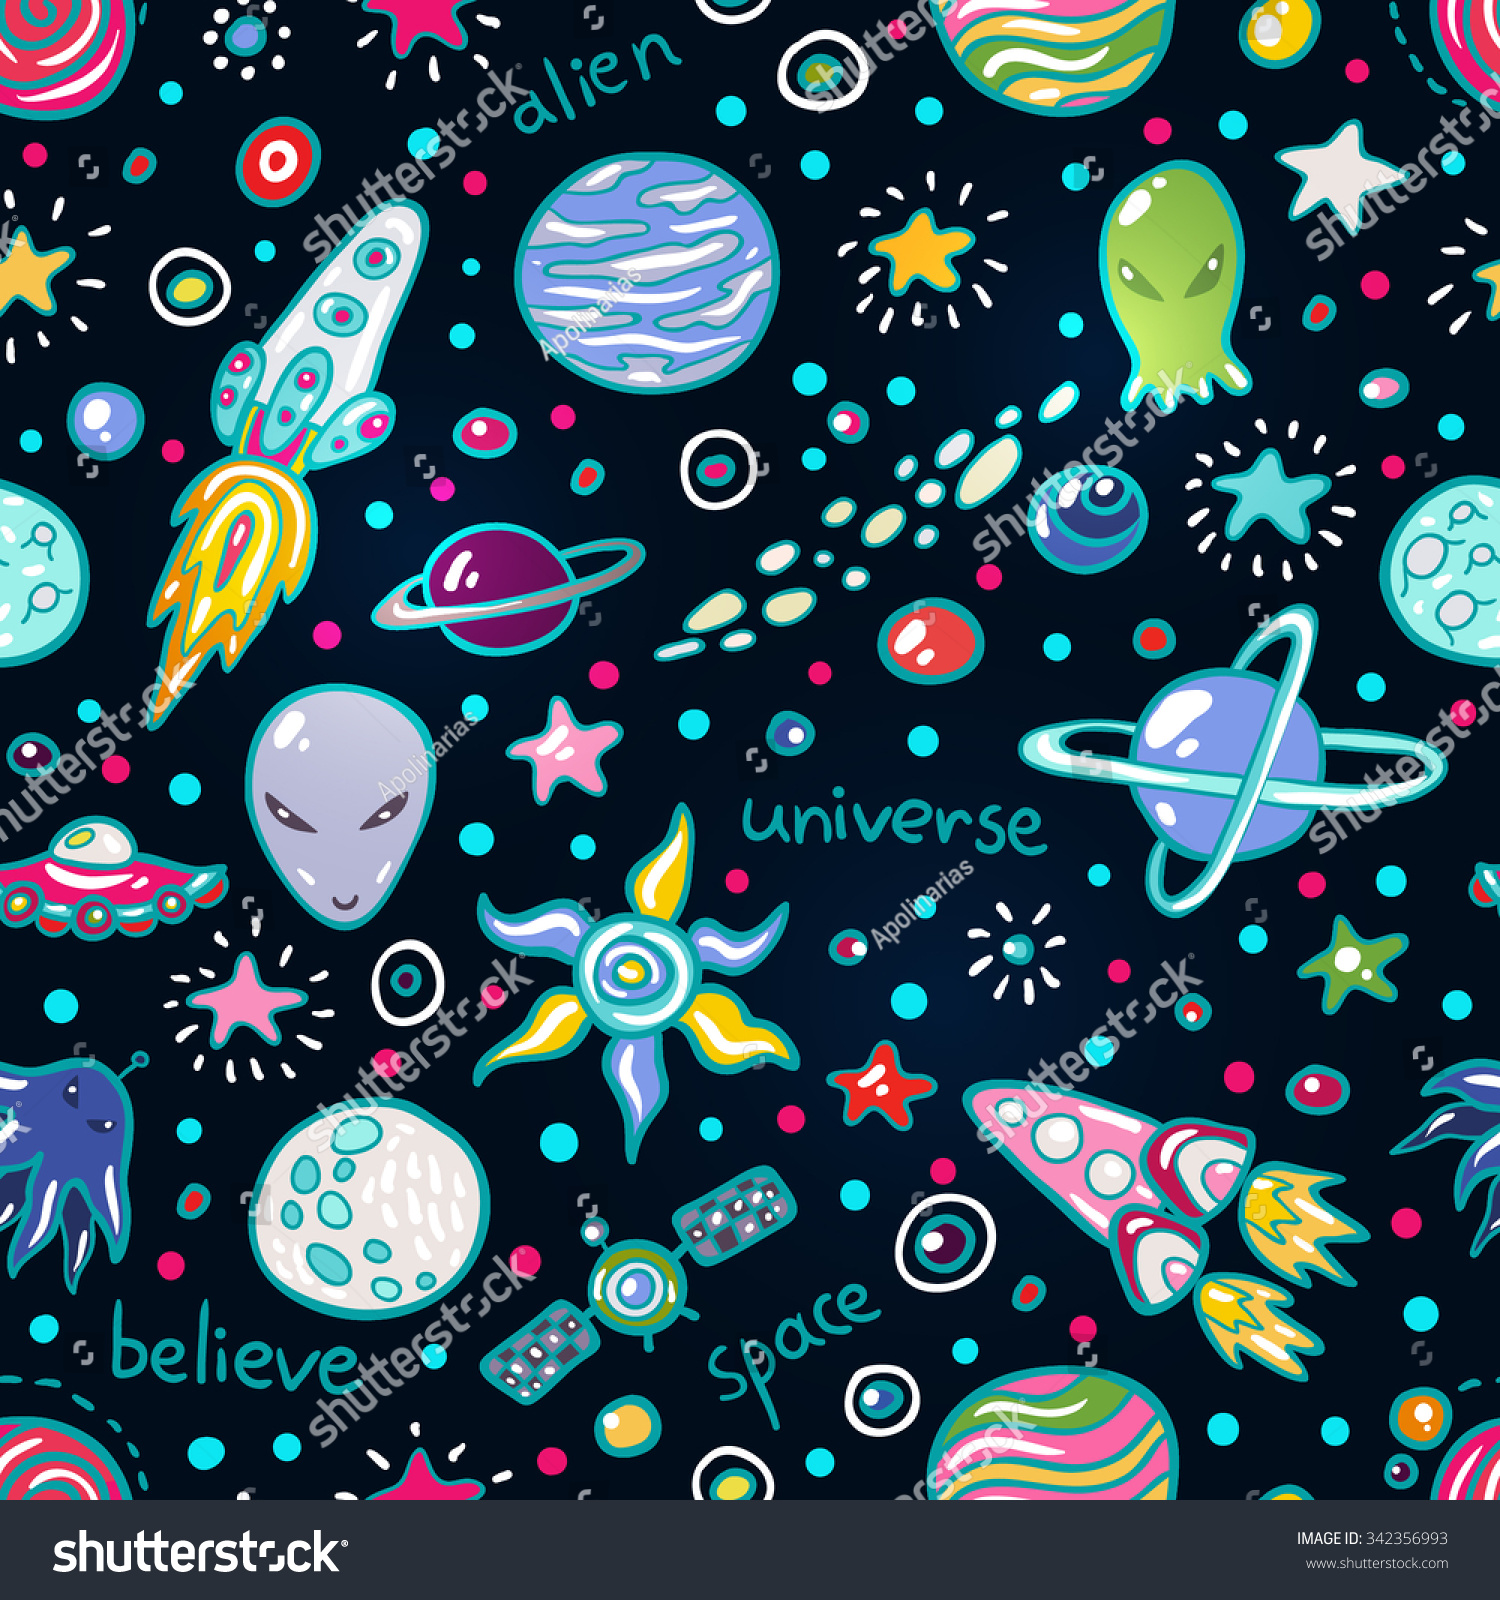 cute science wallpapers girls space - photo #2